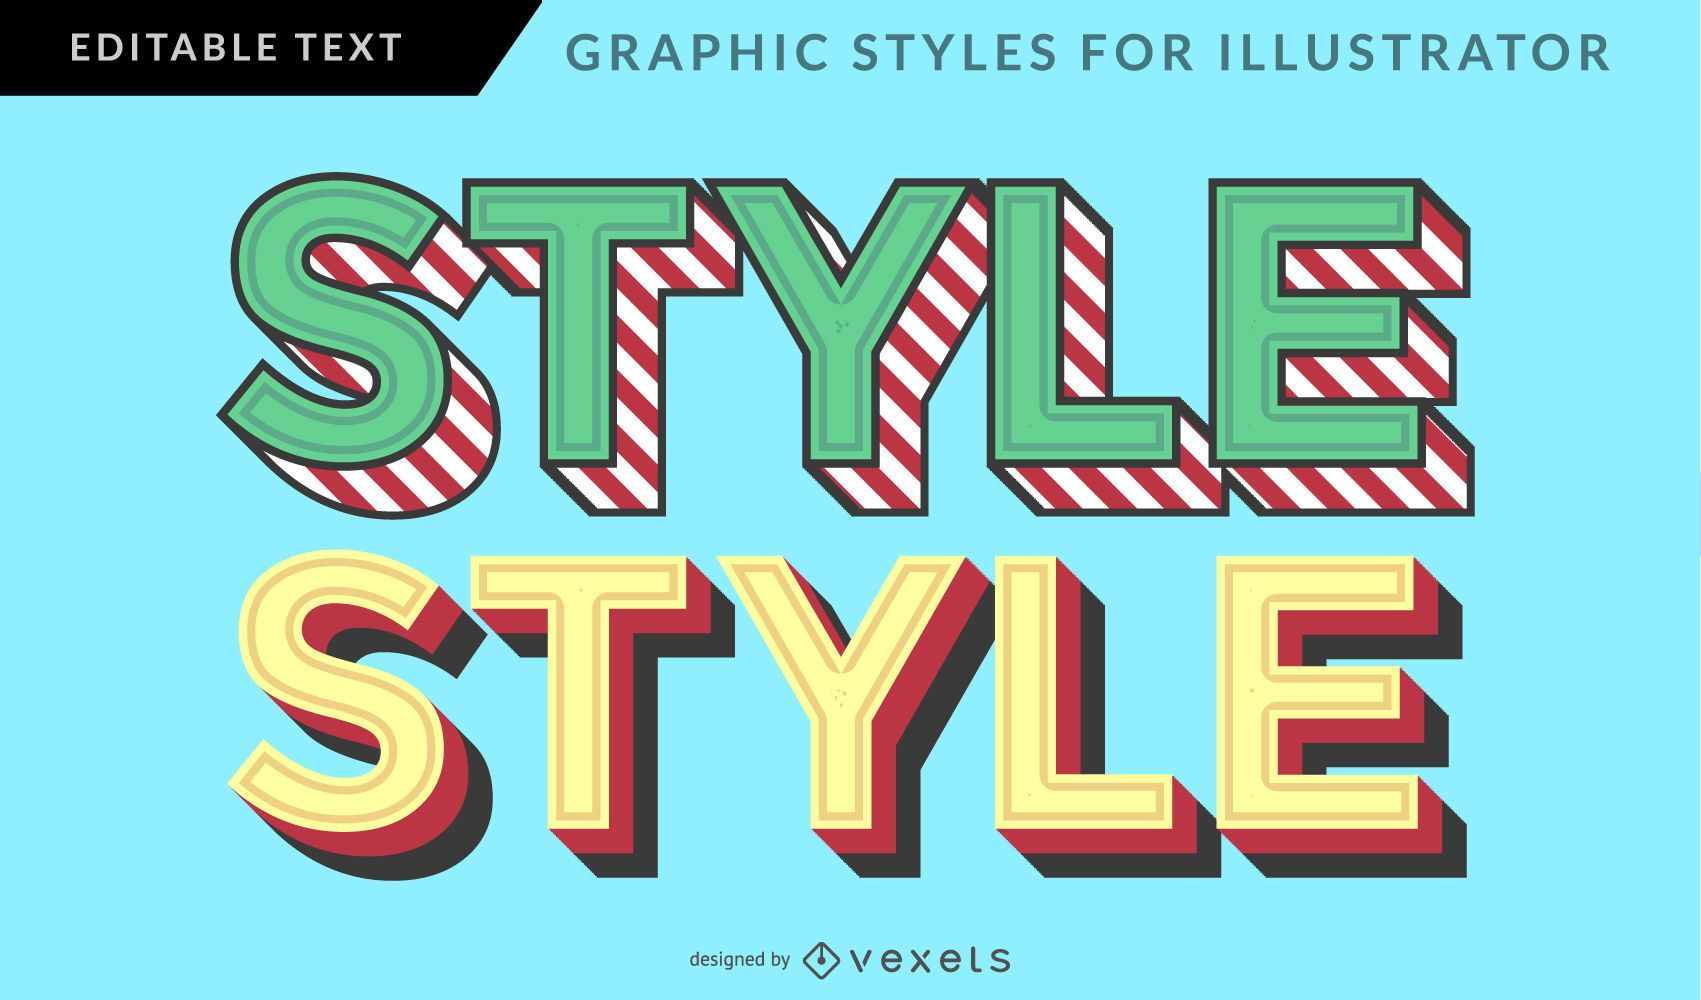 Multi-colored Vintage Graphic Style